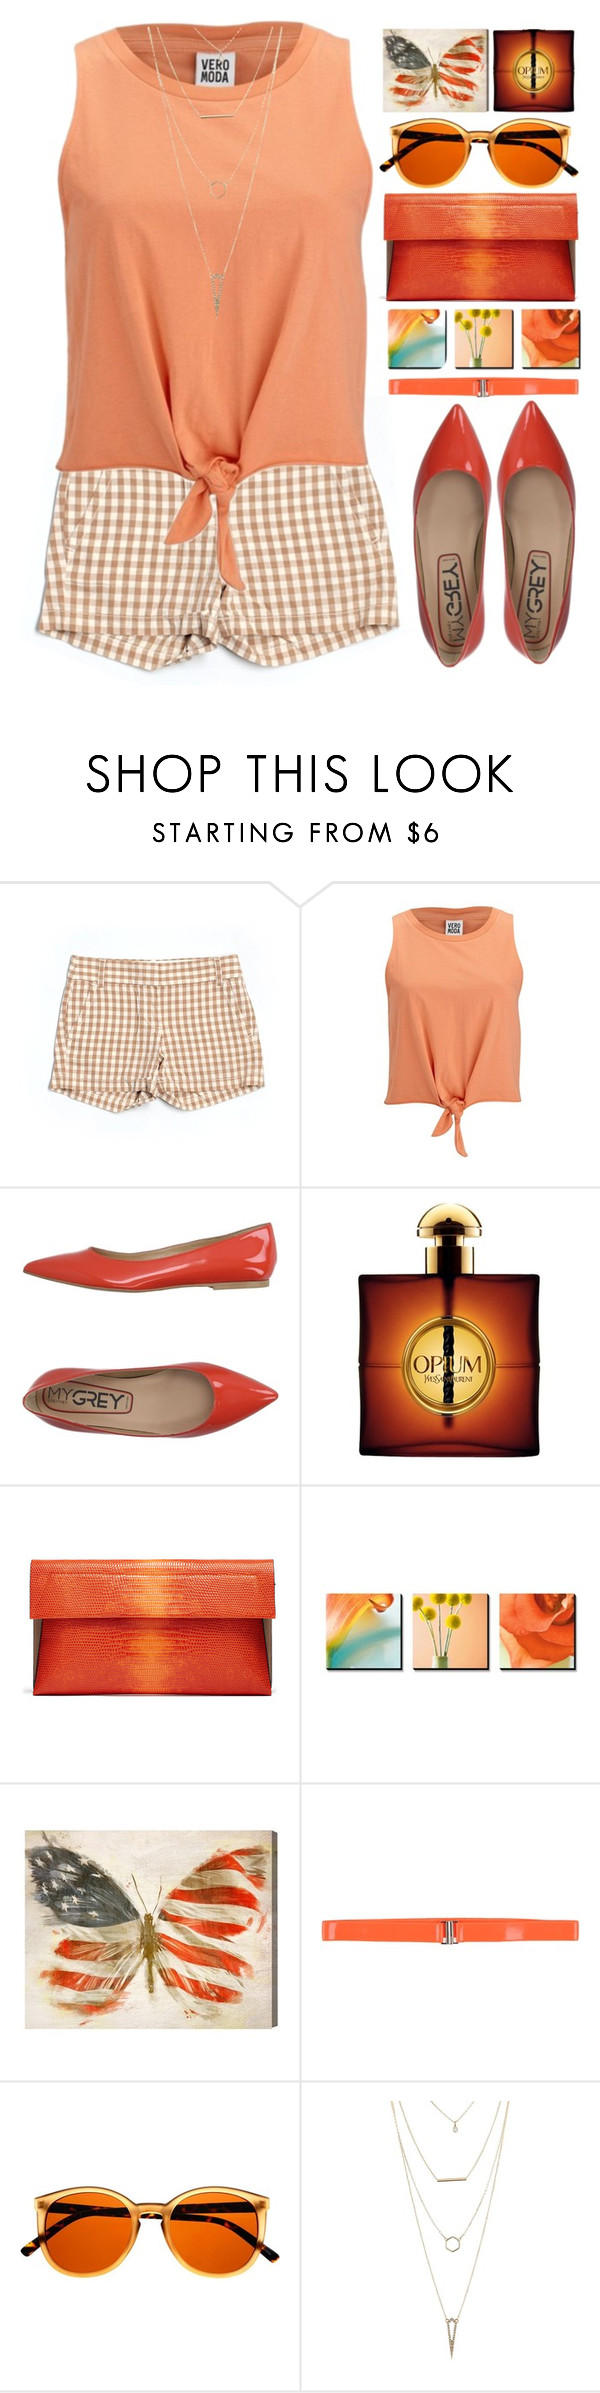 """""""Layered Necklace"""" by grozdana-v ❤ liked on Polyvore featuring J.Crew, Vero Moda, My Grey, Yves Saint Laurent, Oliver Gal Artist Co. and Charlotte Russe"""